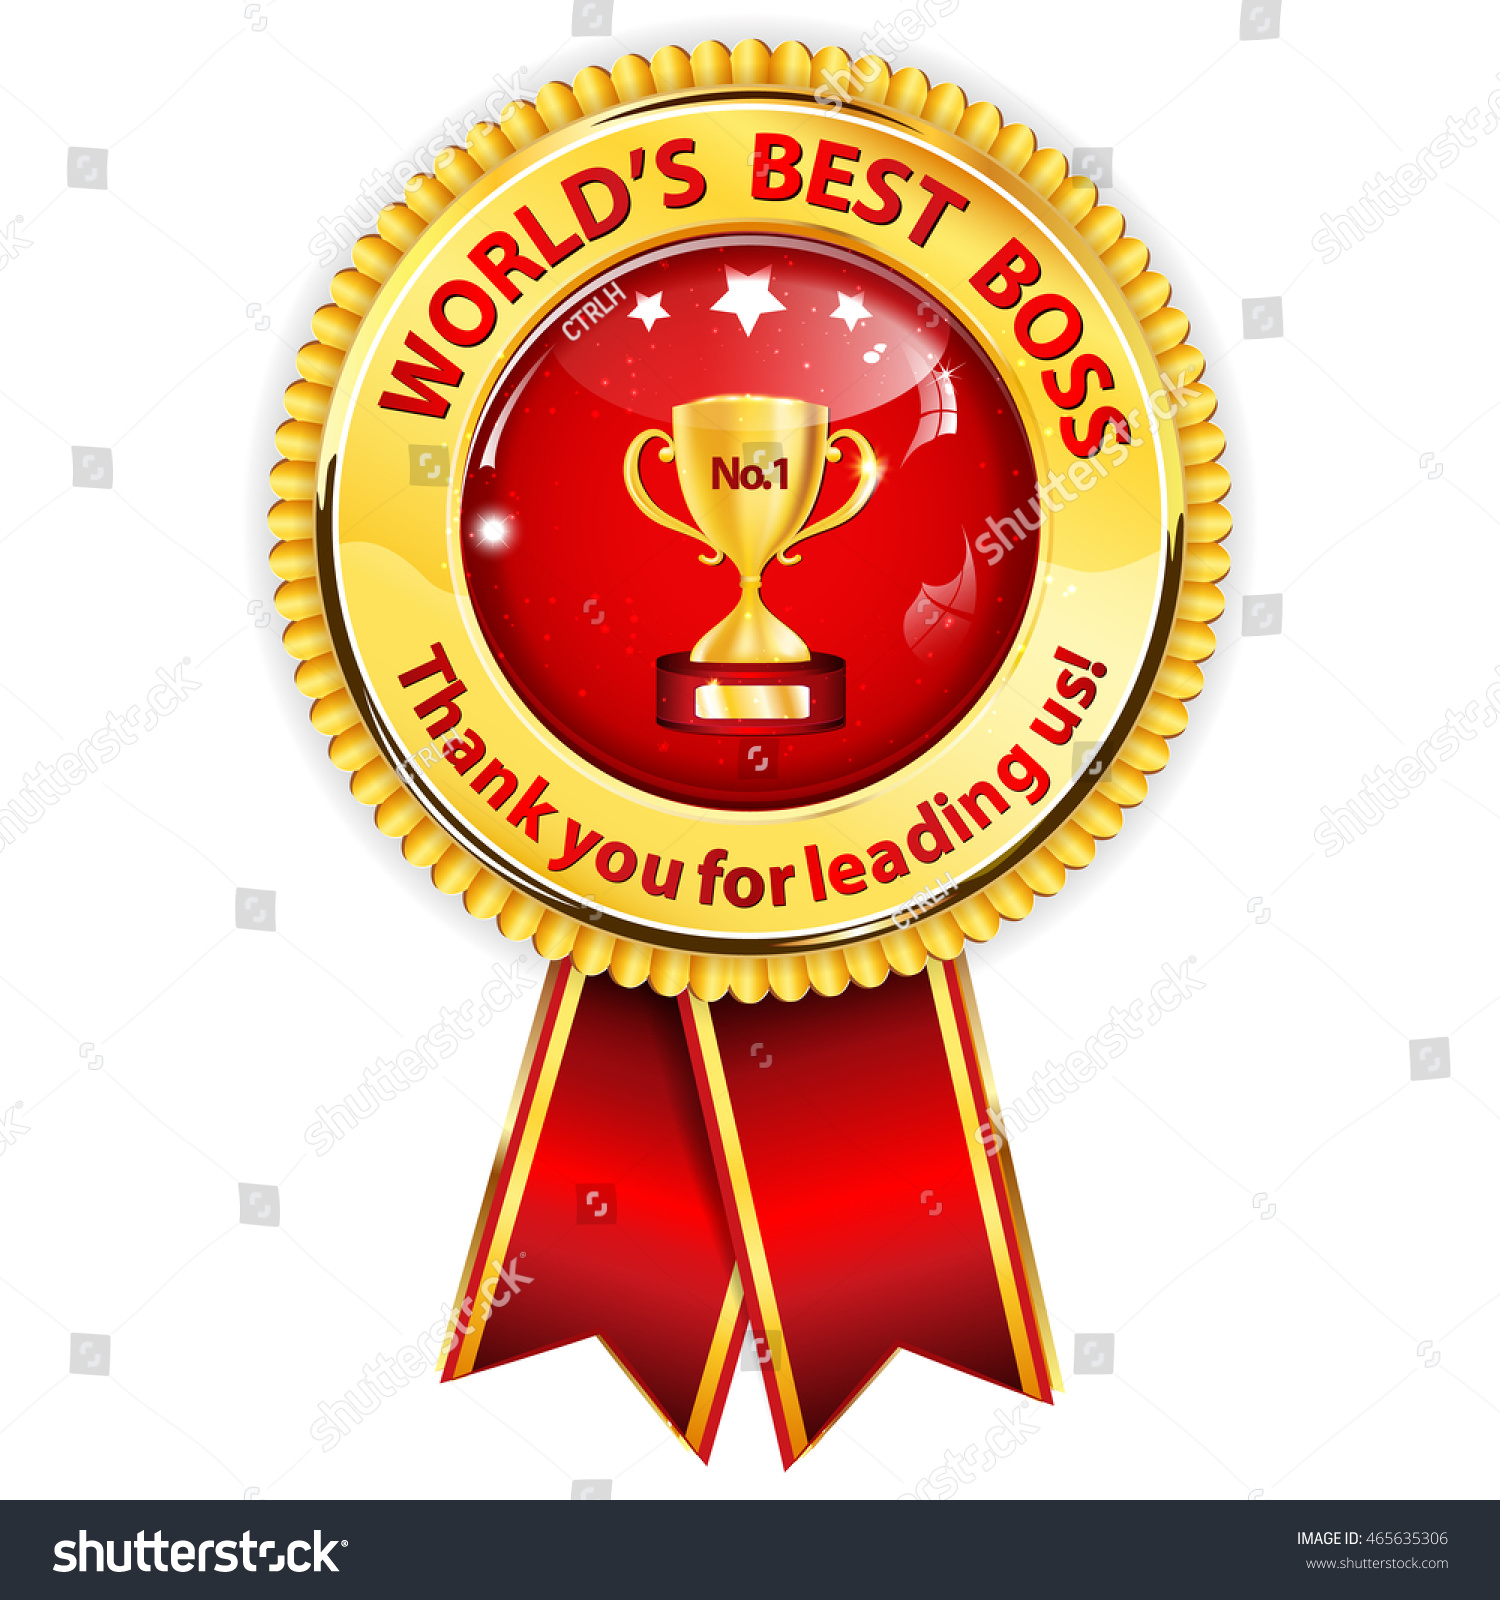 worlds best boss thank you leading stock vector royalty free